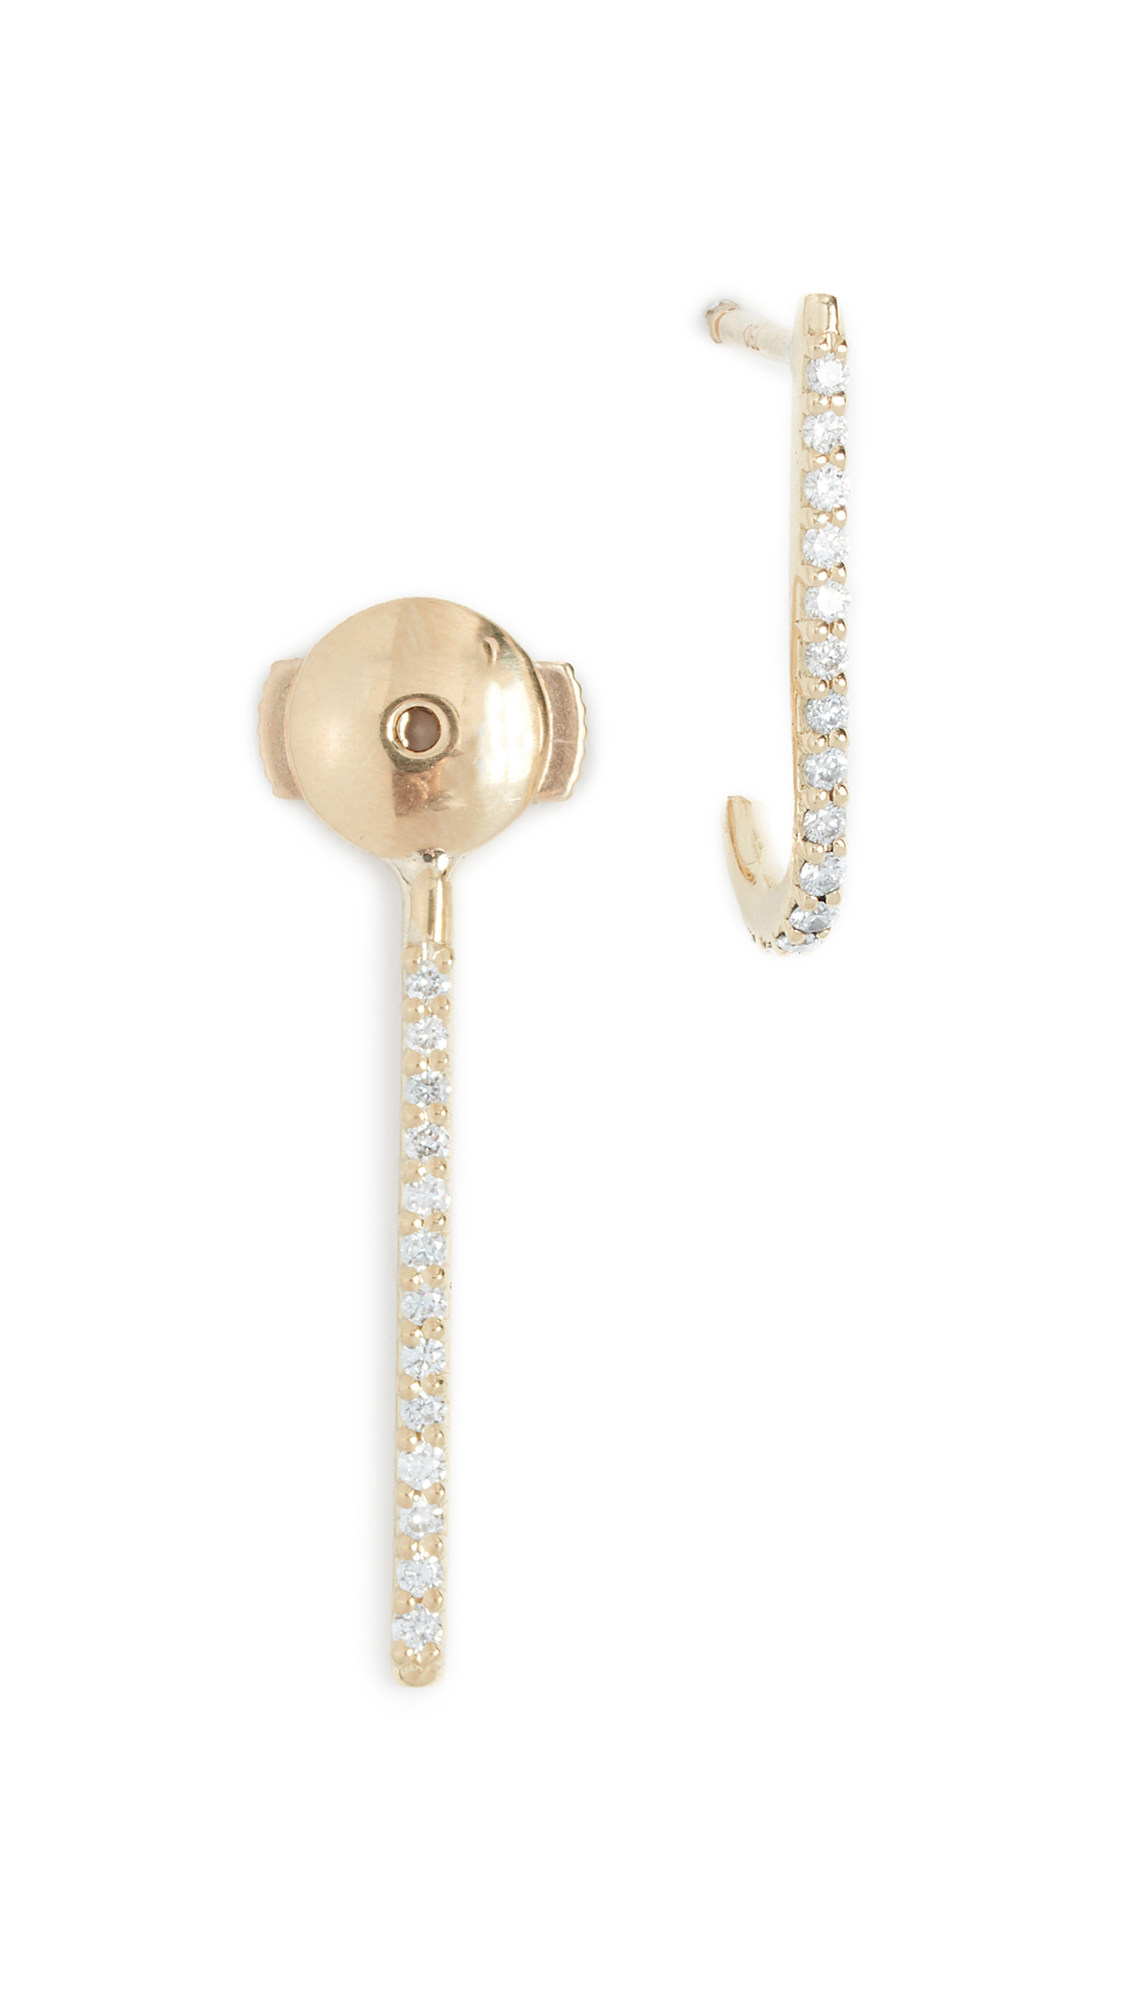 KAT KIM 18K Petite Diamond Ear Pin in Gold/Diamond